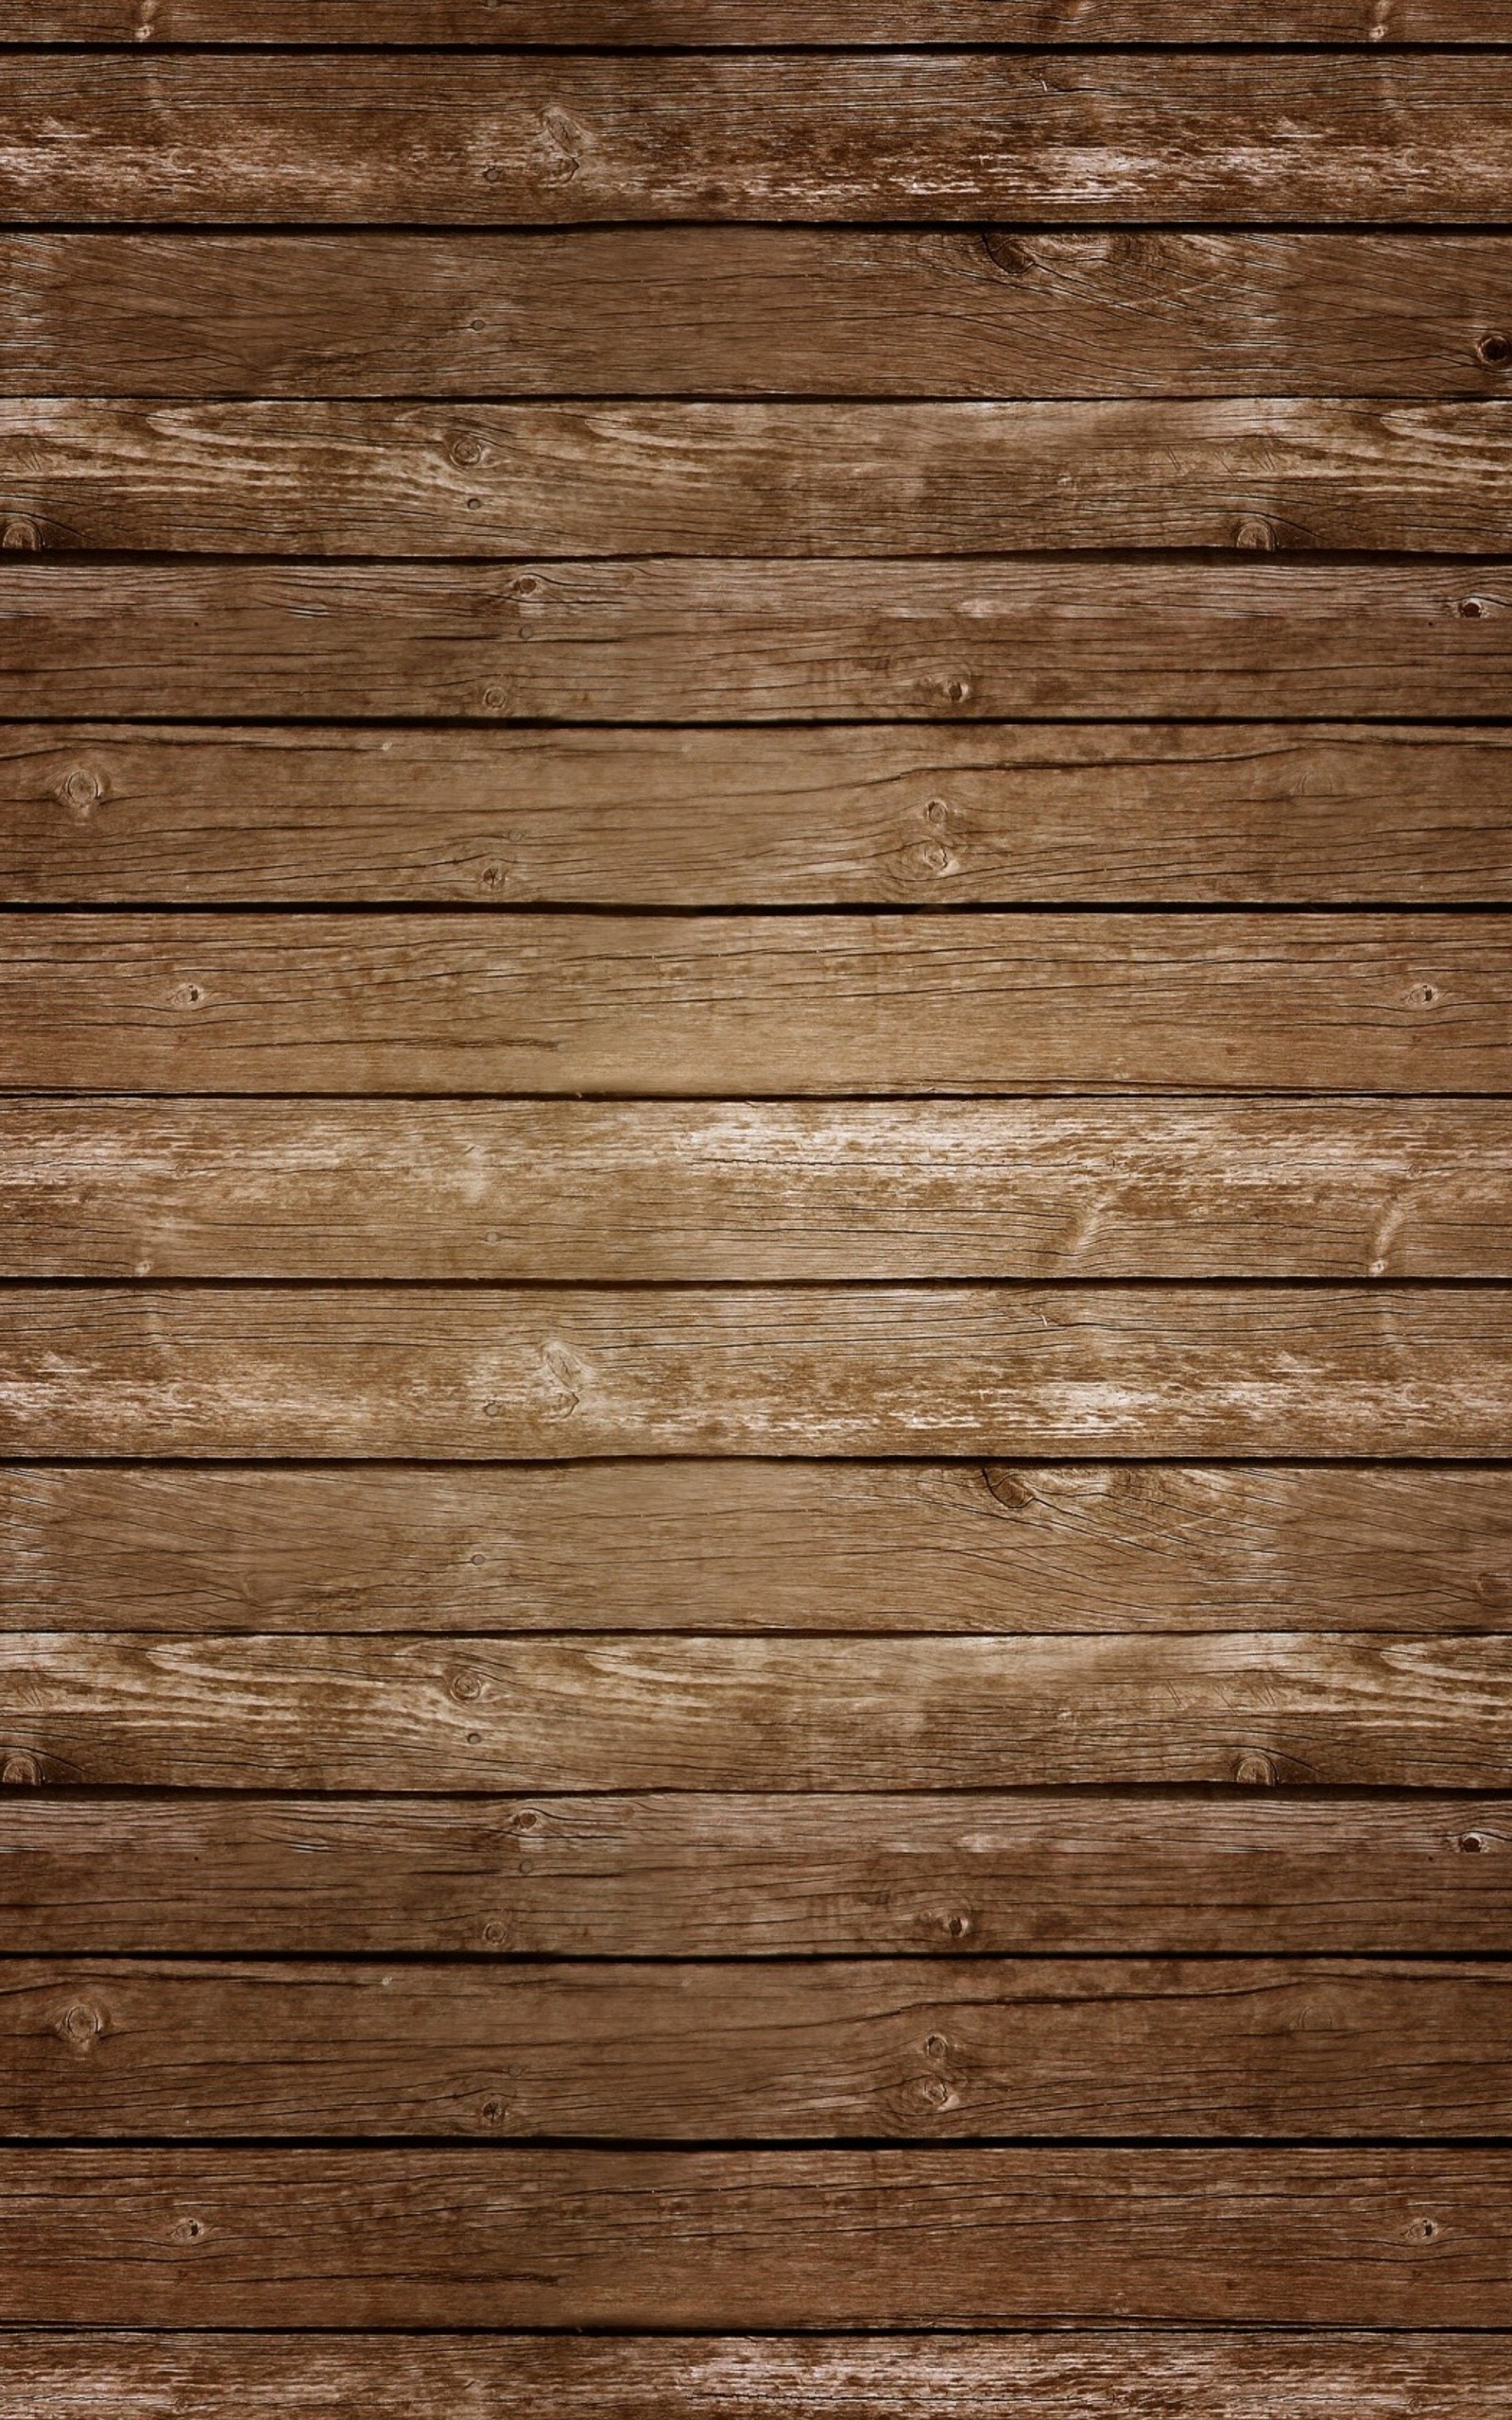 Rustic Wood Background ~ Rustic background ·① download free awesome wallpapers for